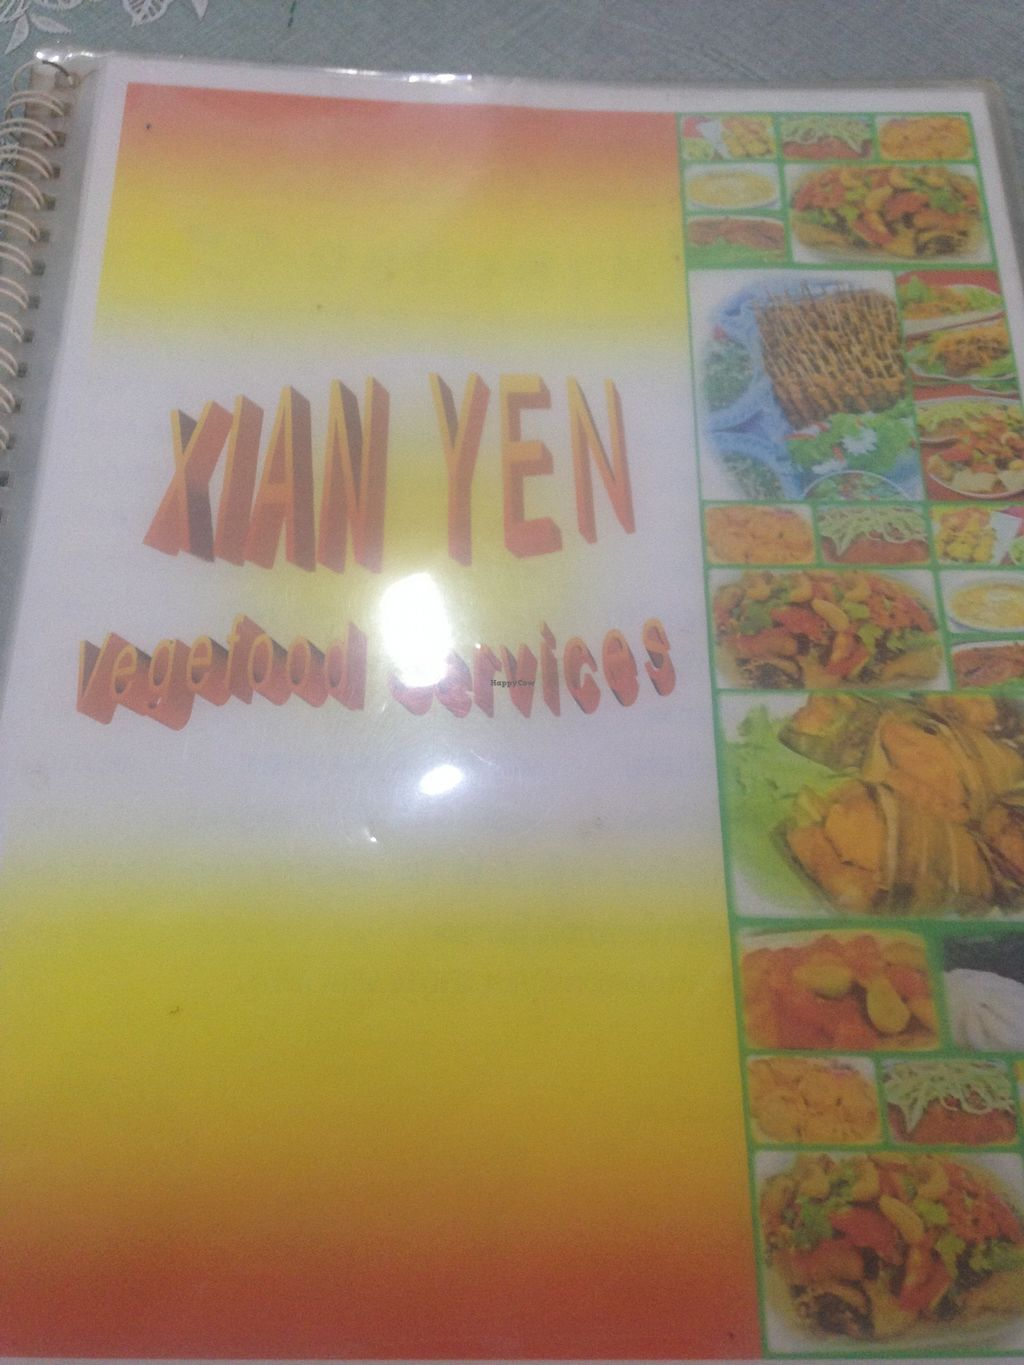 """Photo of Xian Yen  by <a href=""""/members/profile/harryang"""">harryang</a> <br/>Menu <br/> February 28, 2018  - <a href='/contact/abuse/image/84987/364837'>Report</a>"""